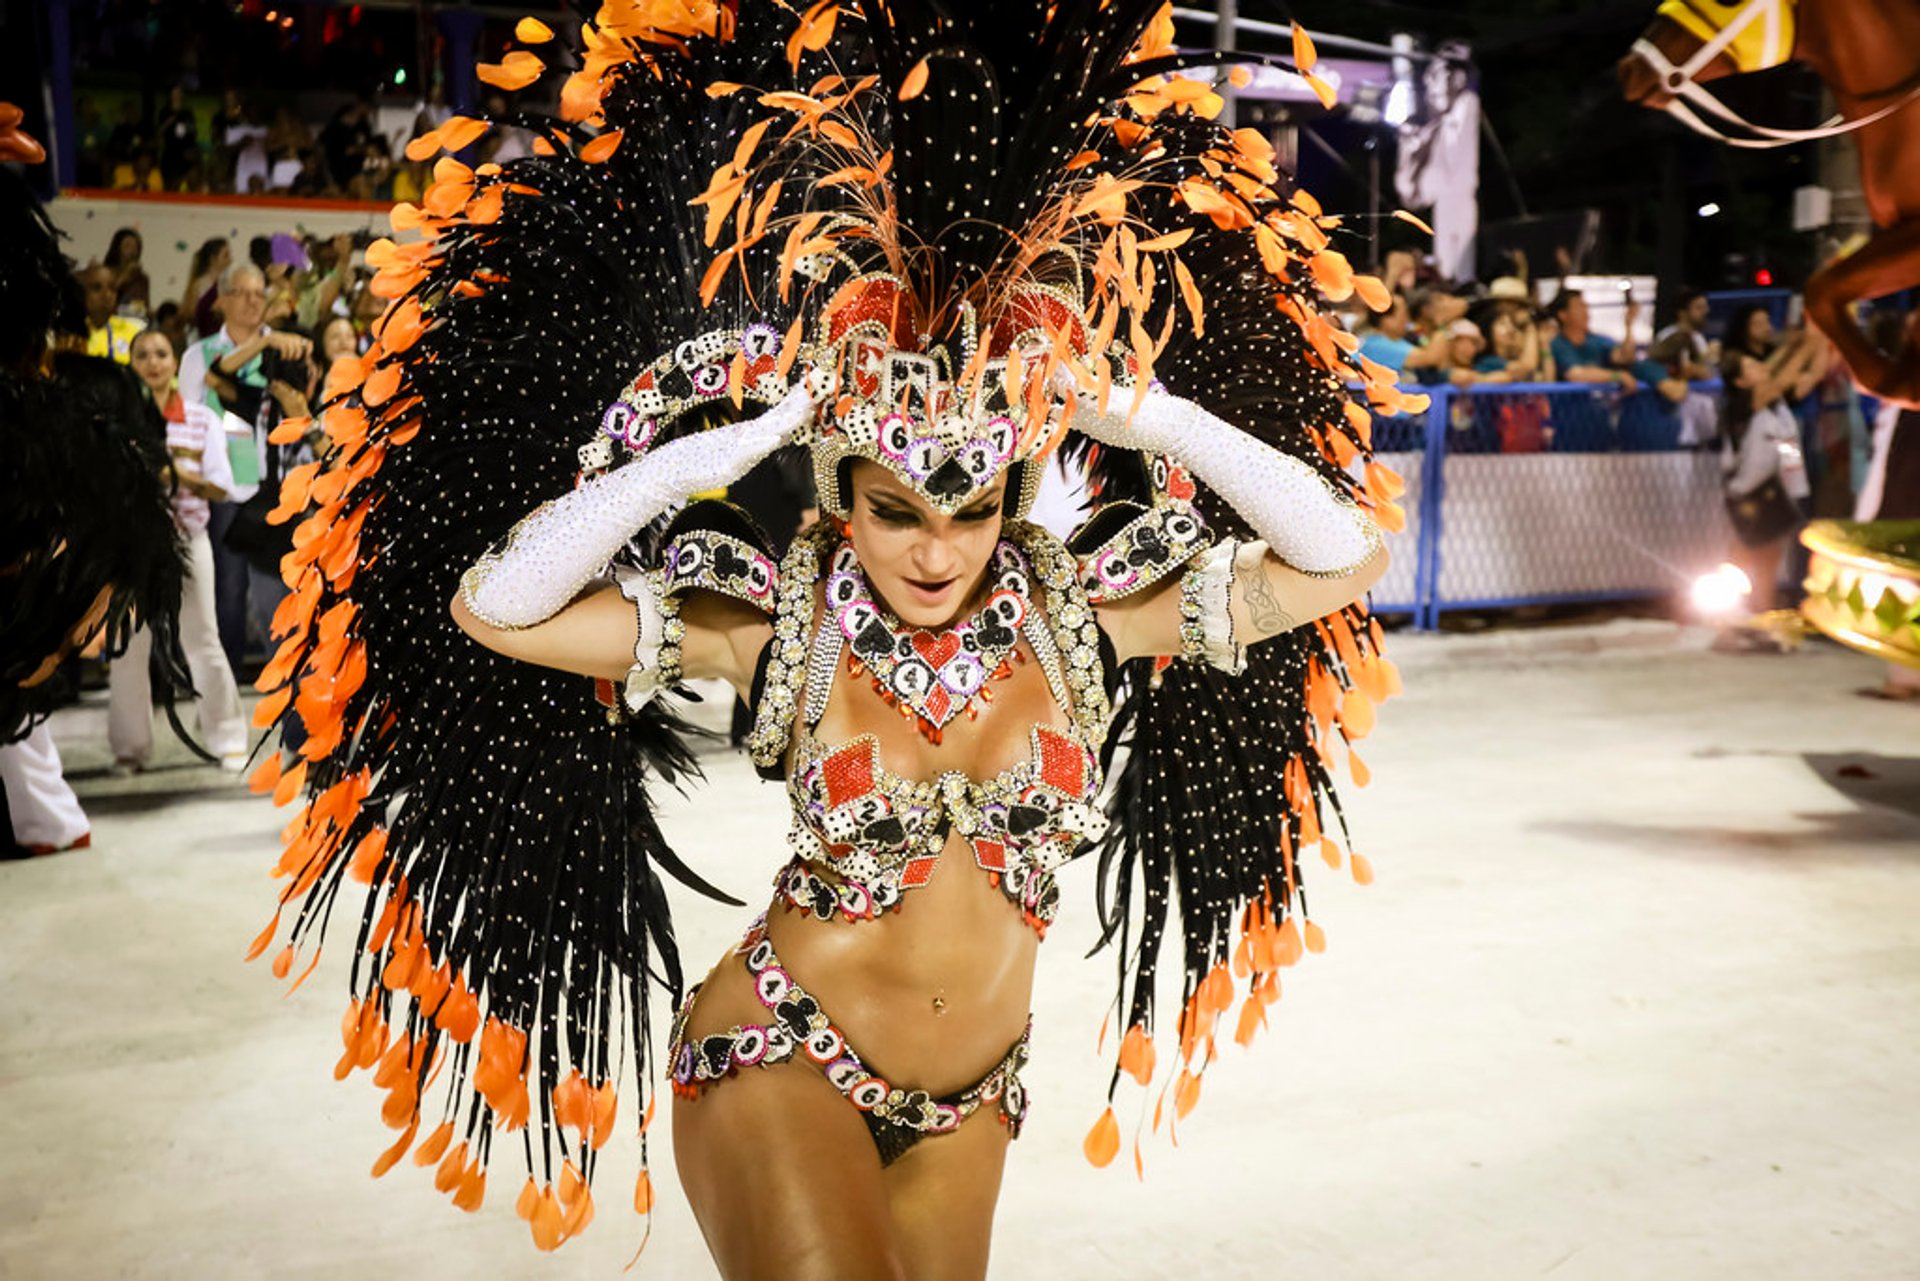 Best time to see Rio Carnival in Rio de Janeiro 2020